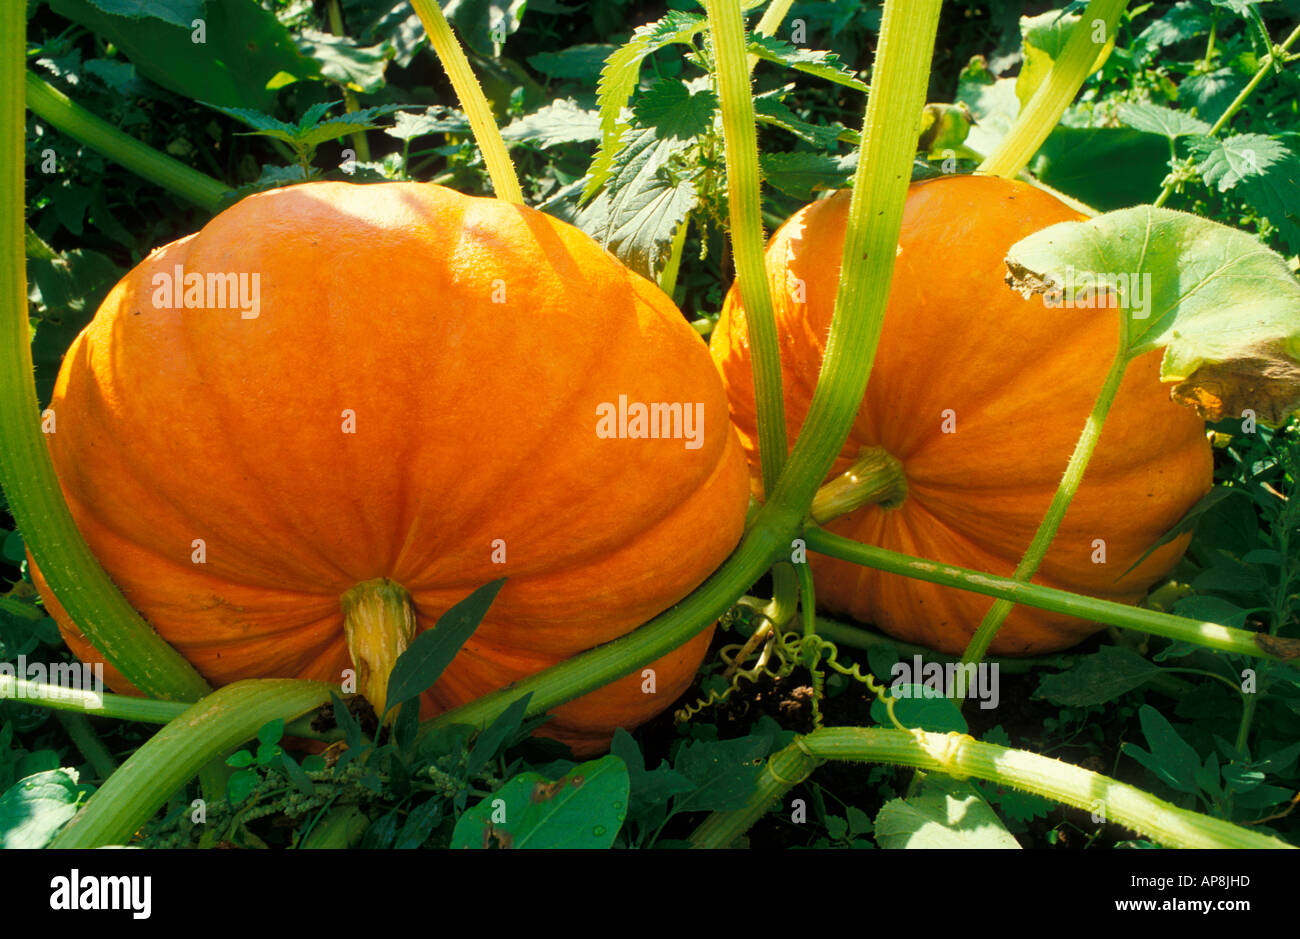 Pumpkins growing Slindon Sussex England UK - Stock Image